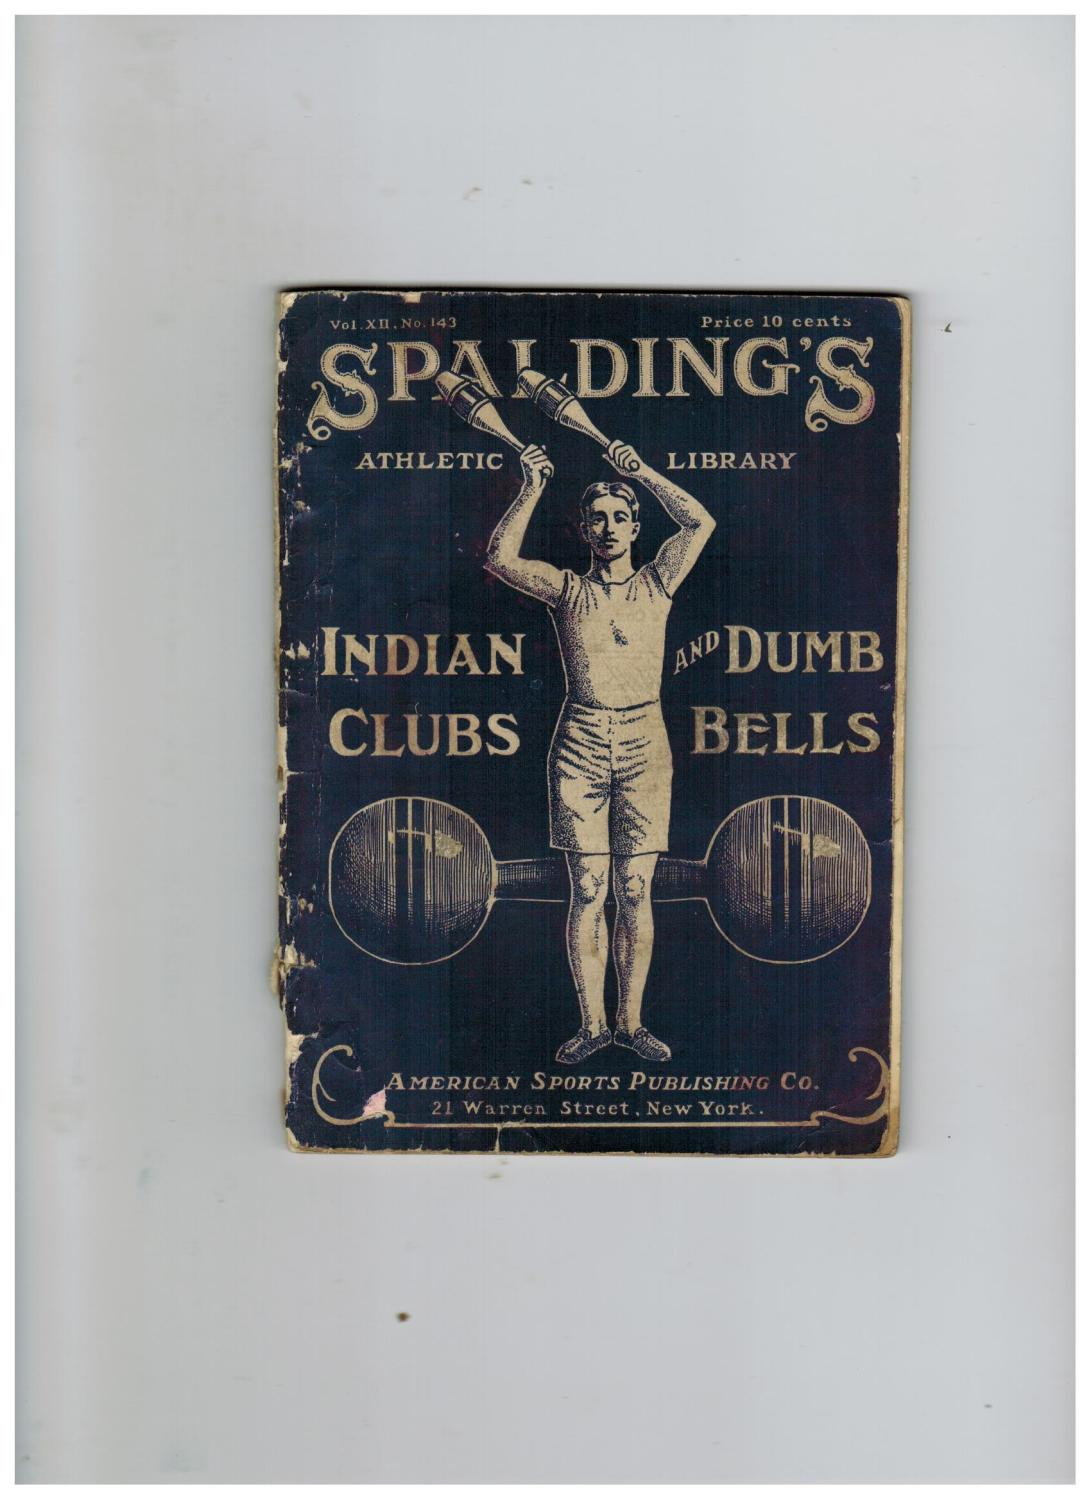 INDIAN CLUBS AND DUMB BELLS (Spalding Athletic Library) with Spalding's Catalog of Sports Equipment Dougherty, J.H. Softcover 50+(48) pages, the final 48 pages an exceptional catalog of Spalding's sporting equipment for a variety of sports, including Indian clubs and dumb bel